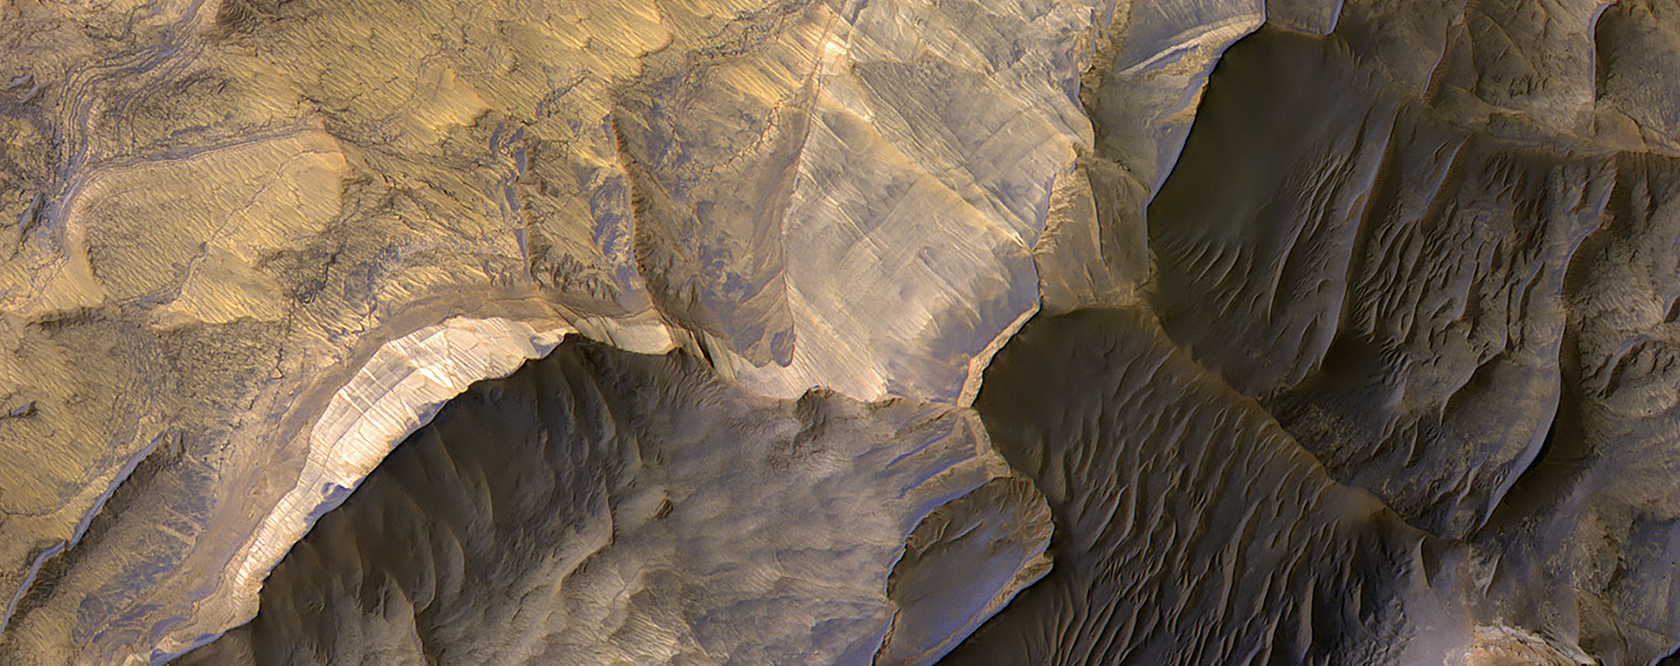 Sandstone in West Candor Chasma